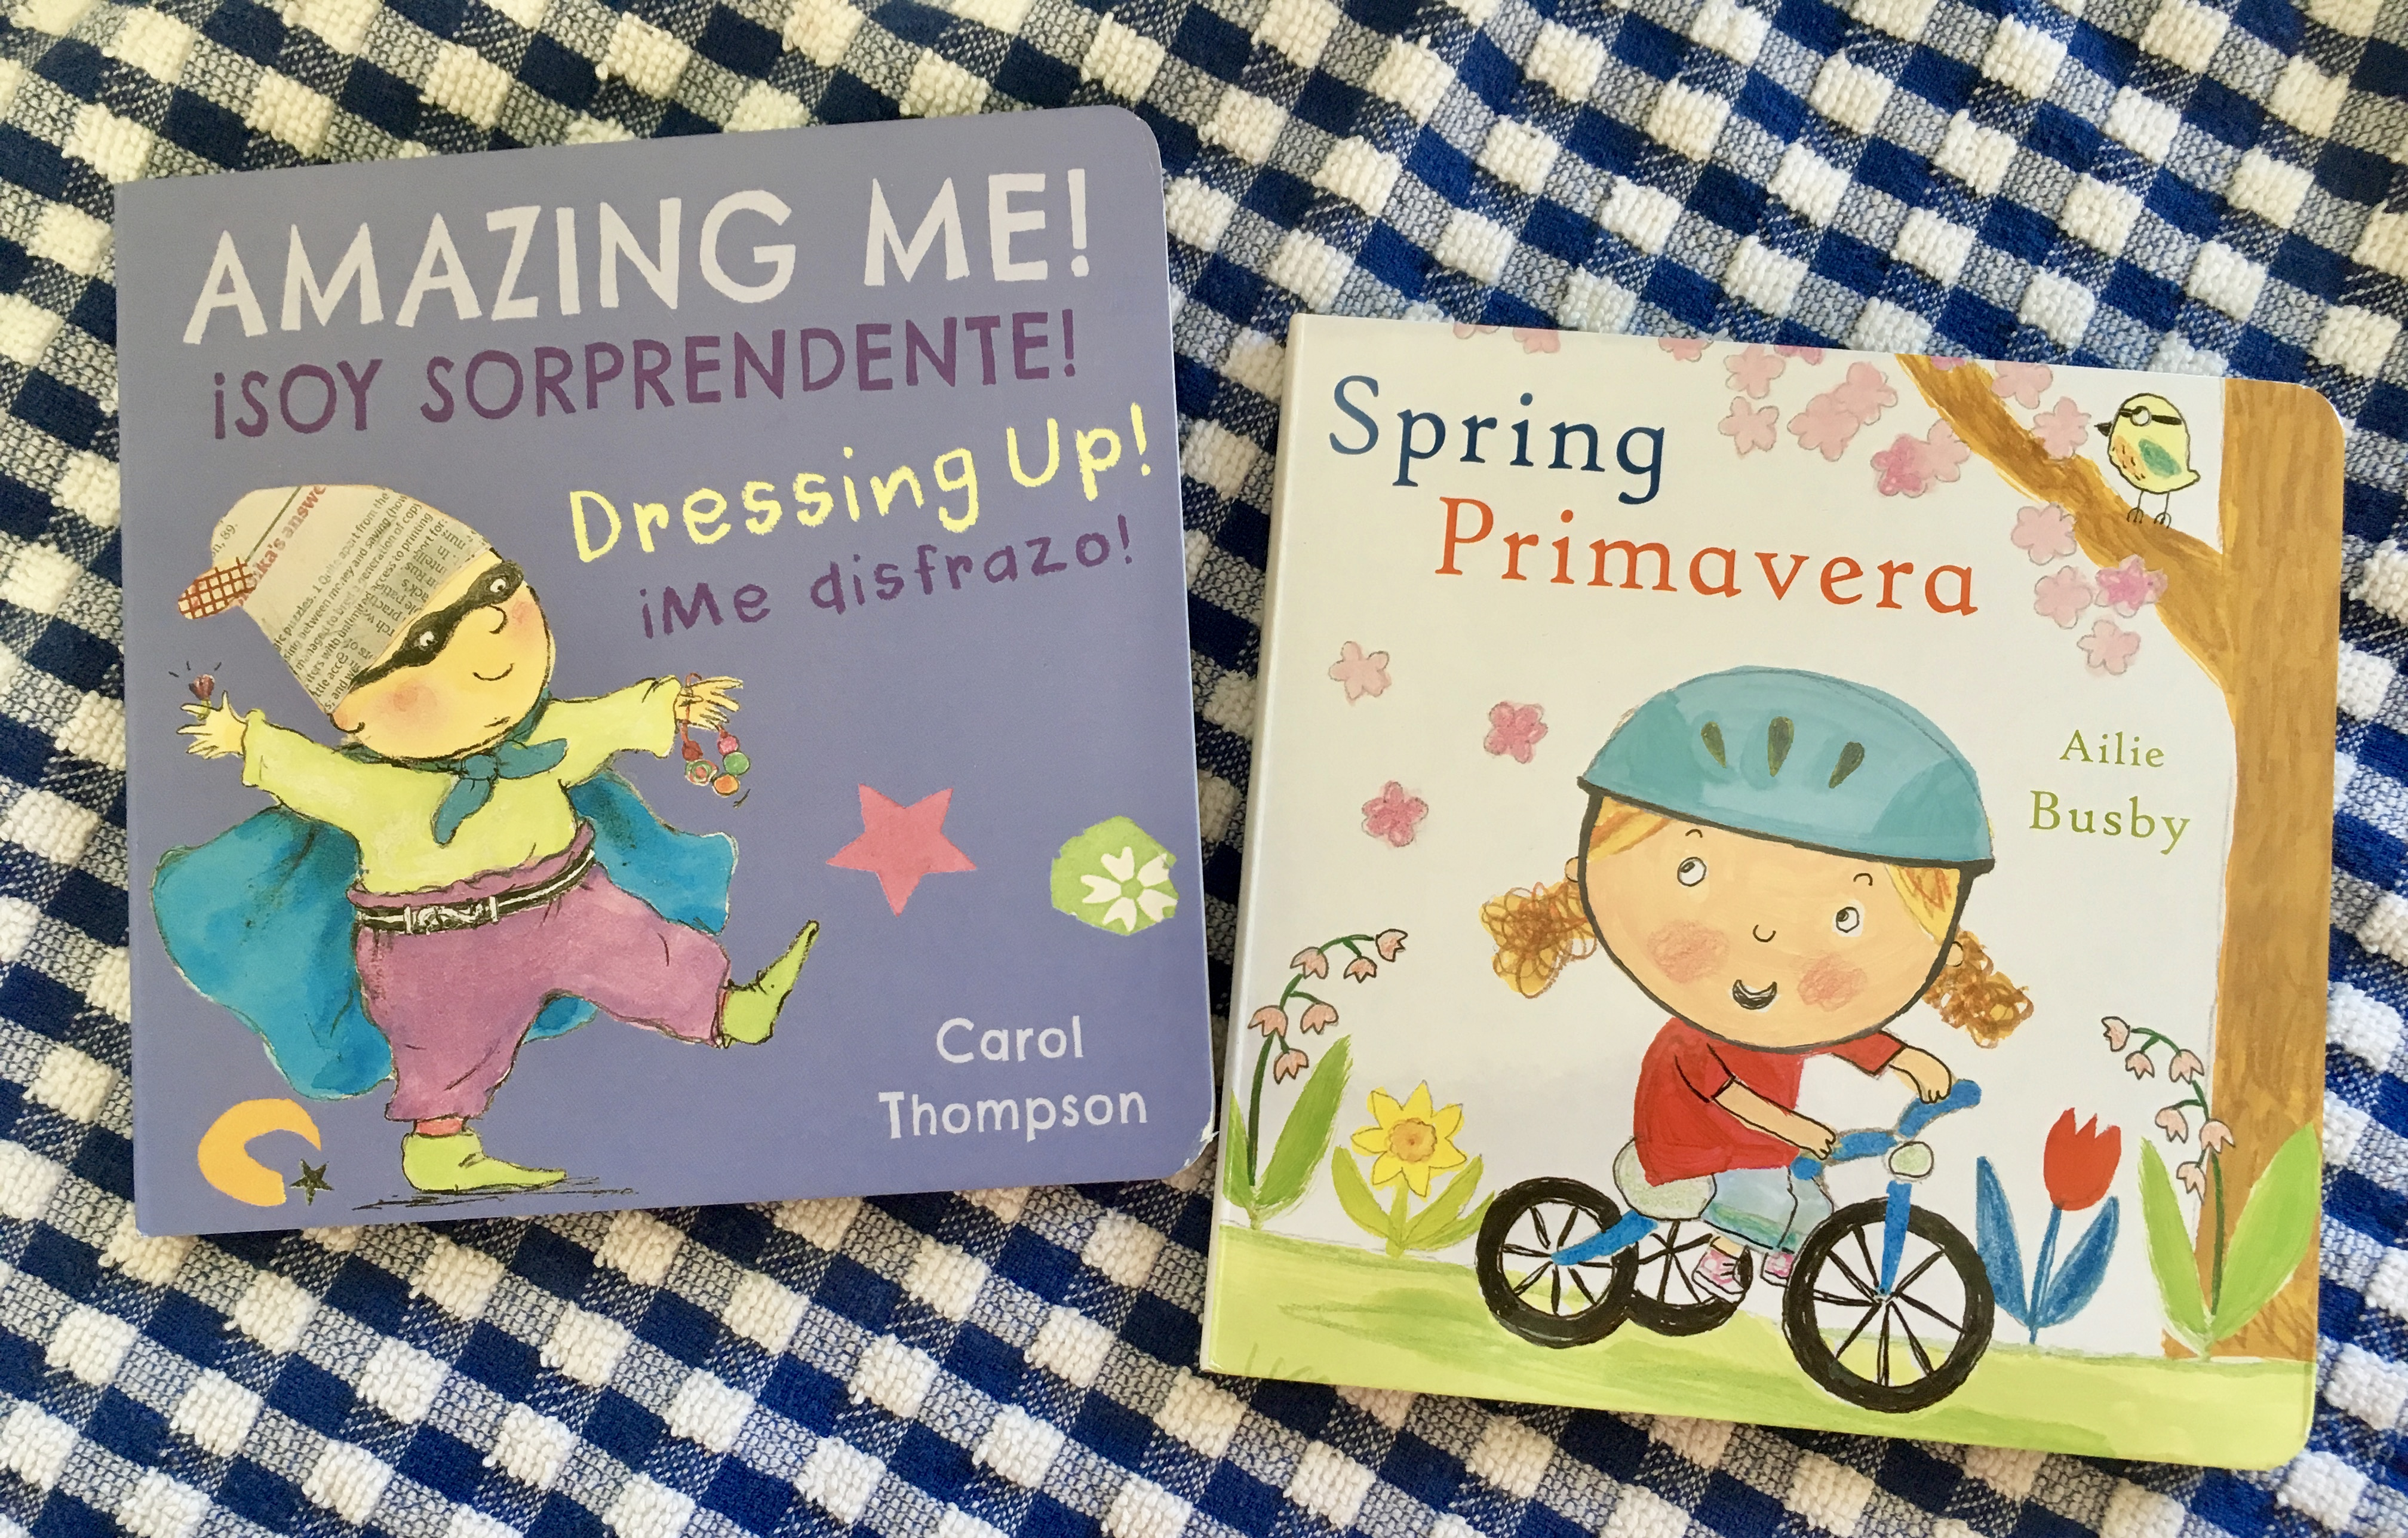 Spring/Primaver and Amazing Me Dressing Up covers